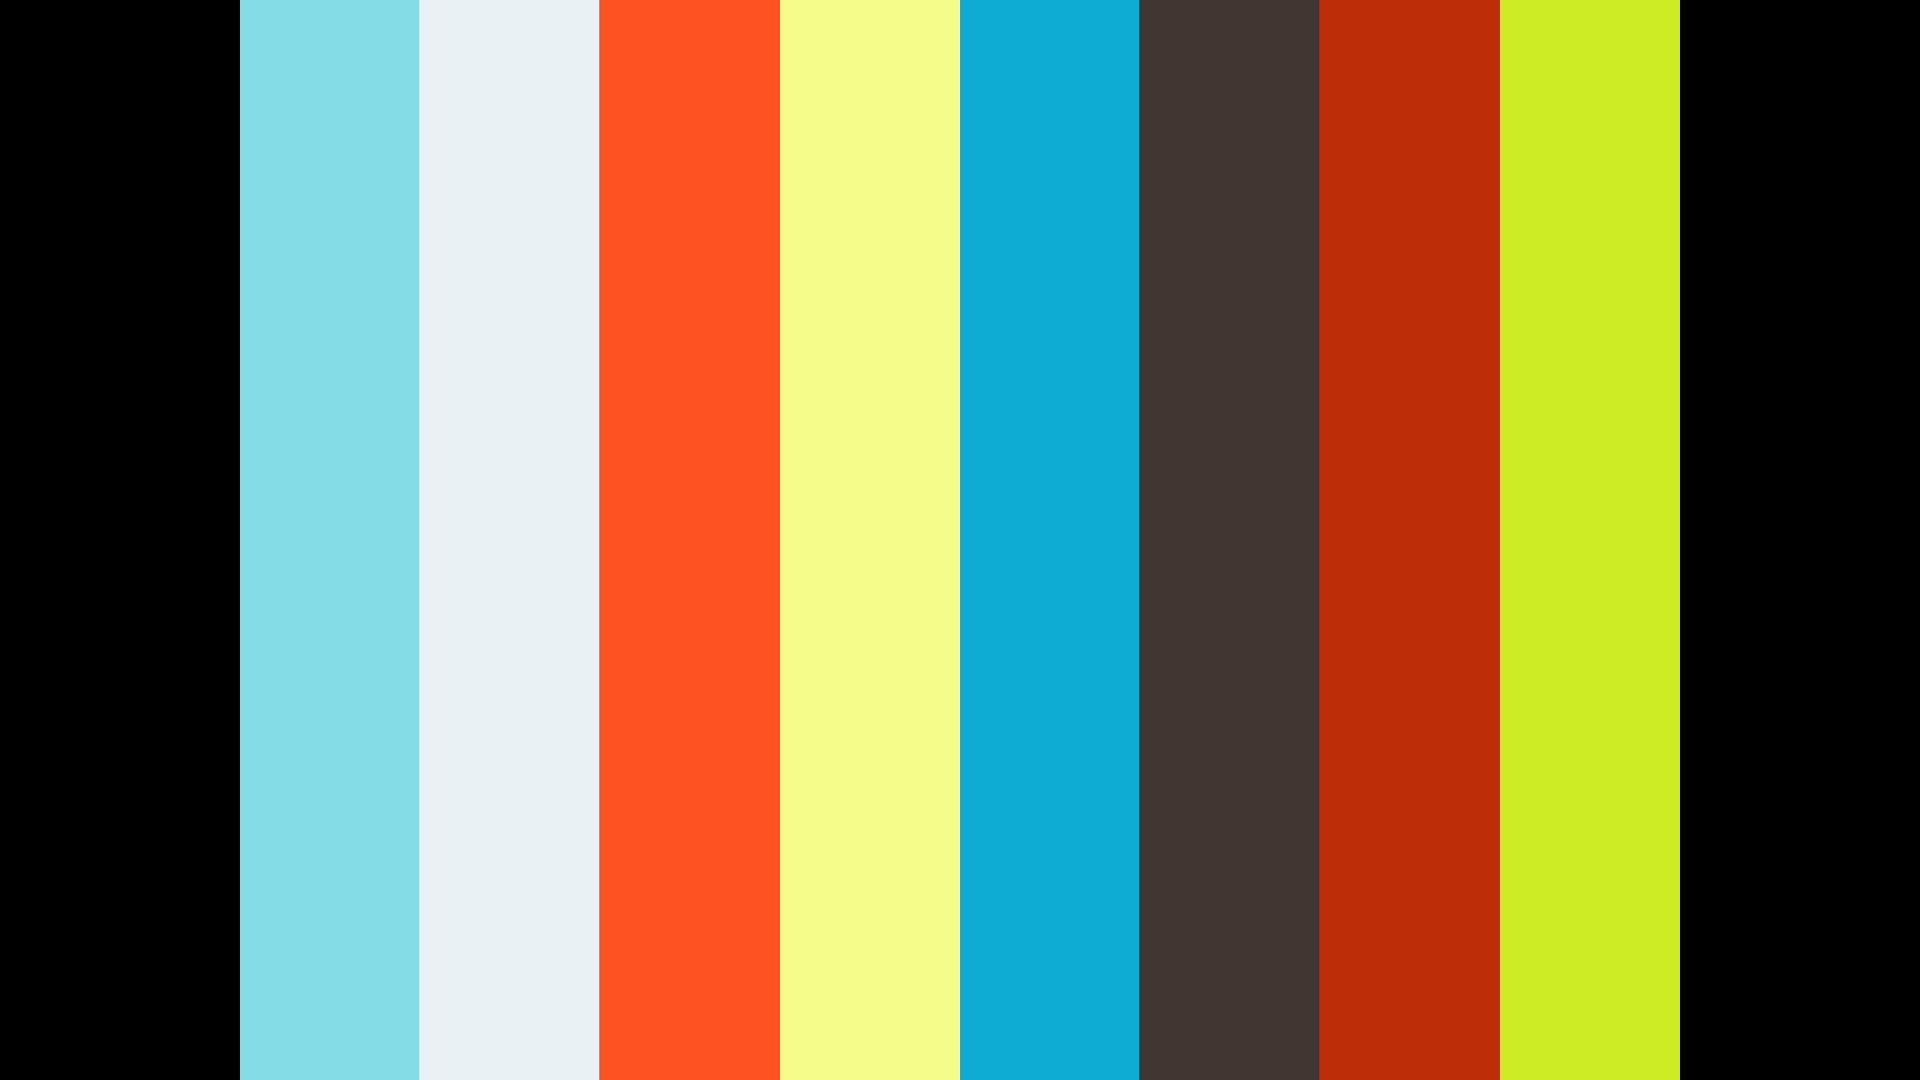 ኢትዮጵያ Kidnapping-Election-Political impasse- a multiplicity of coalitions and myriad of Communiques- Journalist fleein